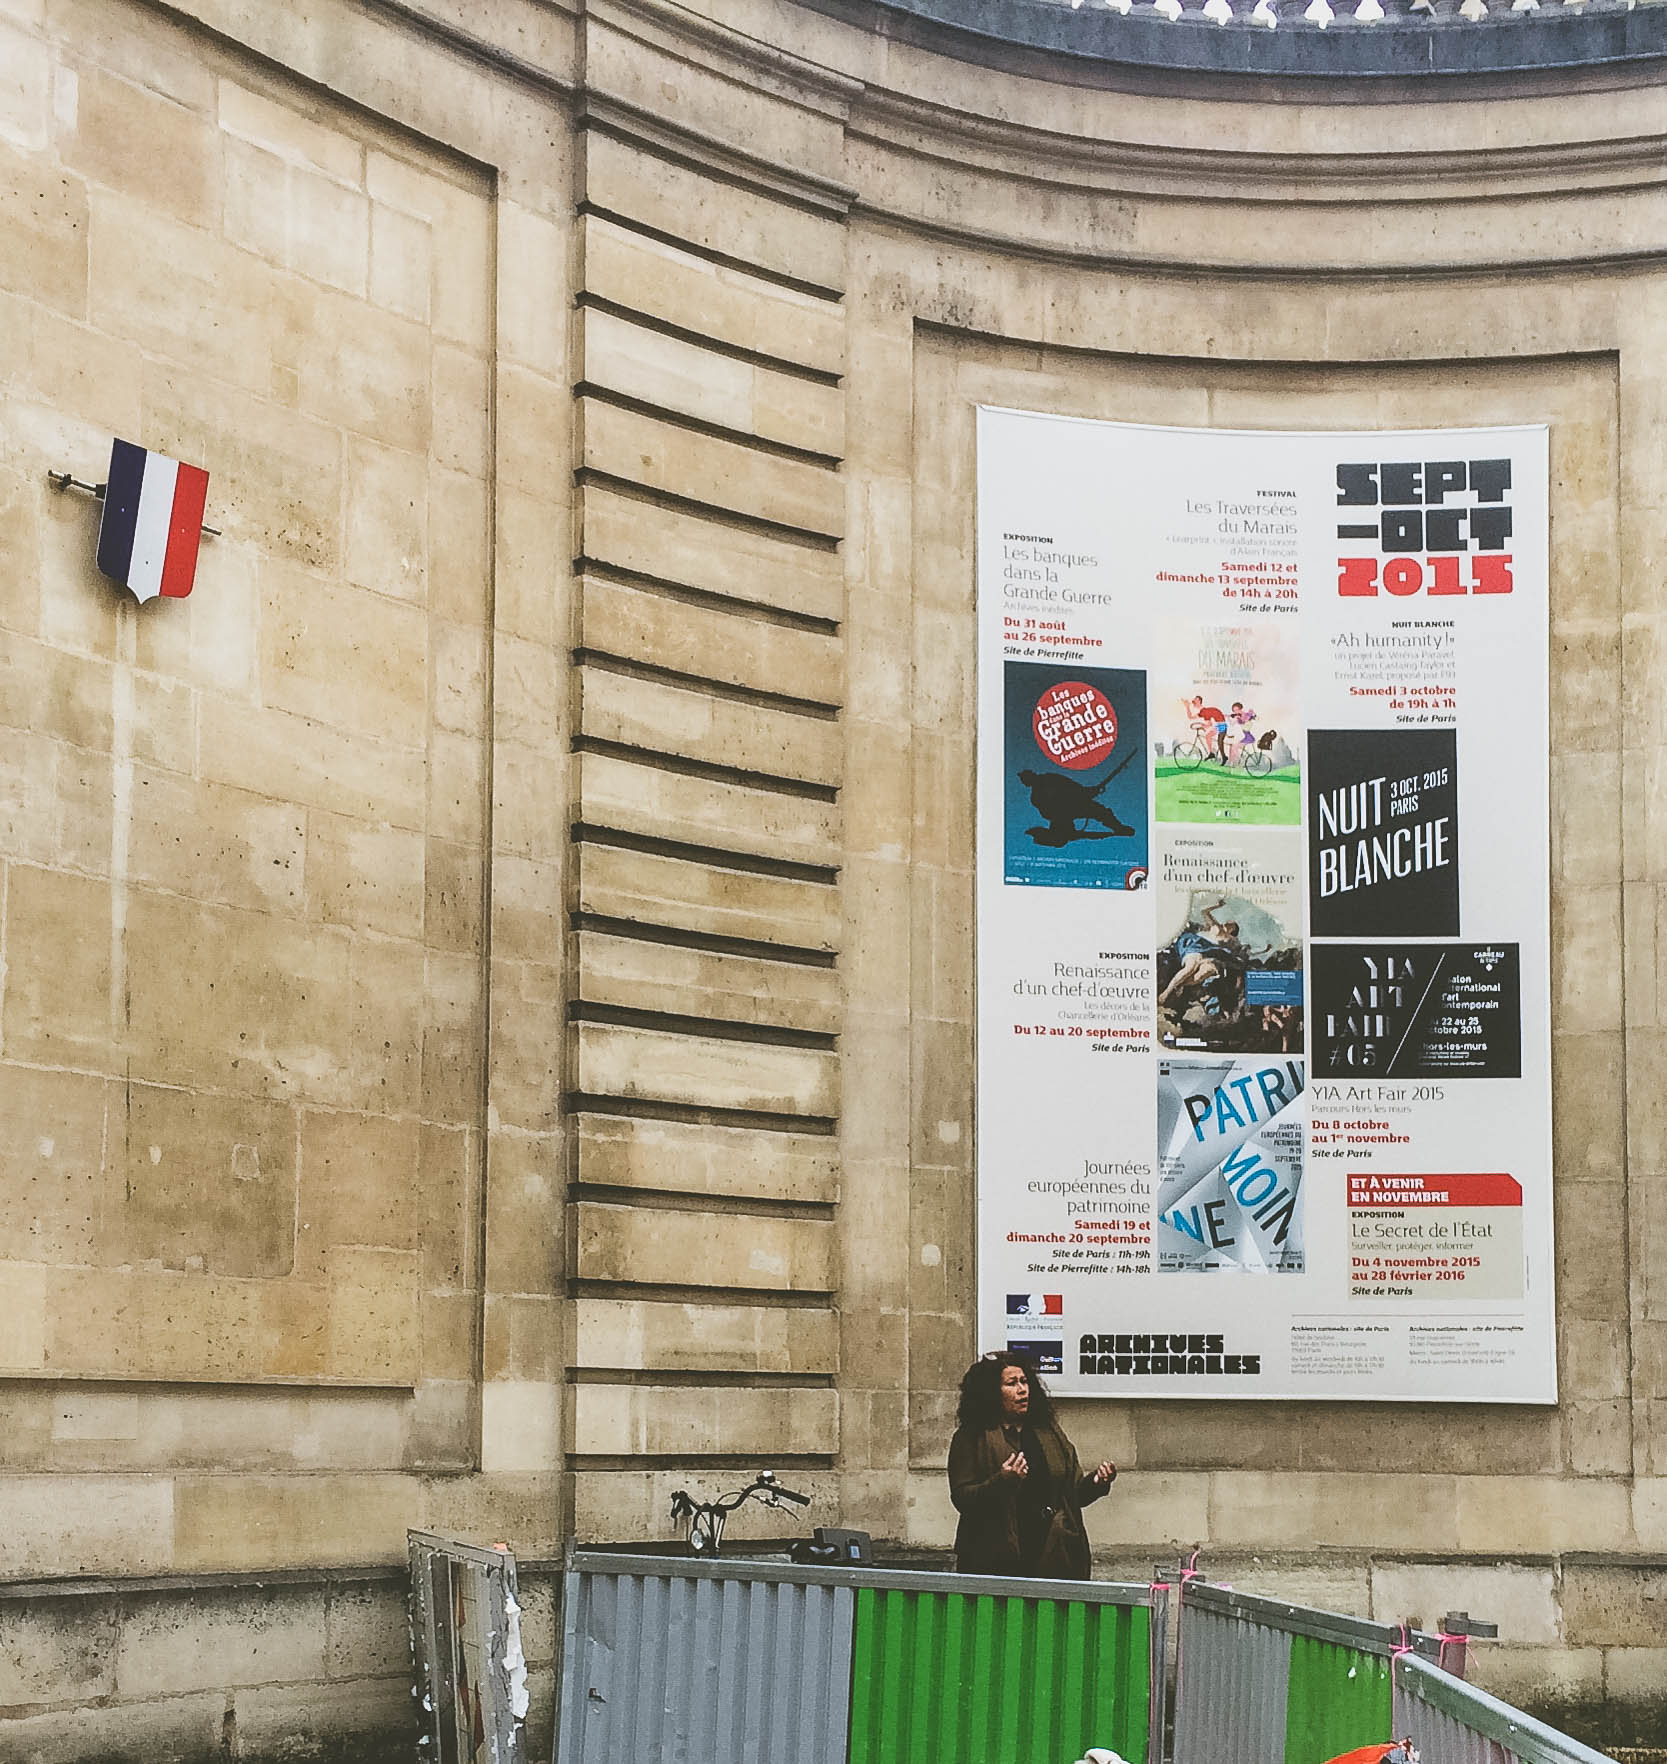 An opera singer doing her thing near Rue des Archives in Paris, France